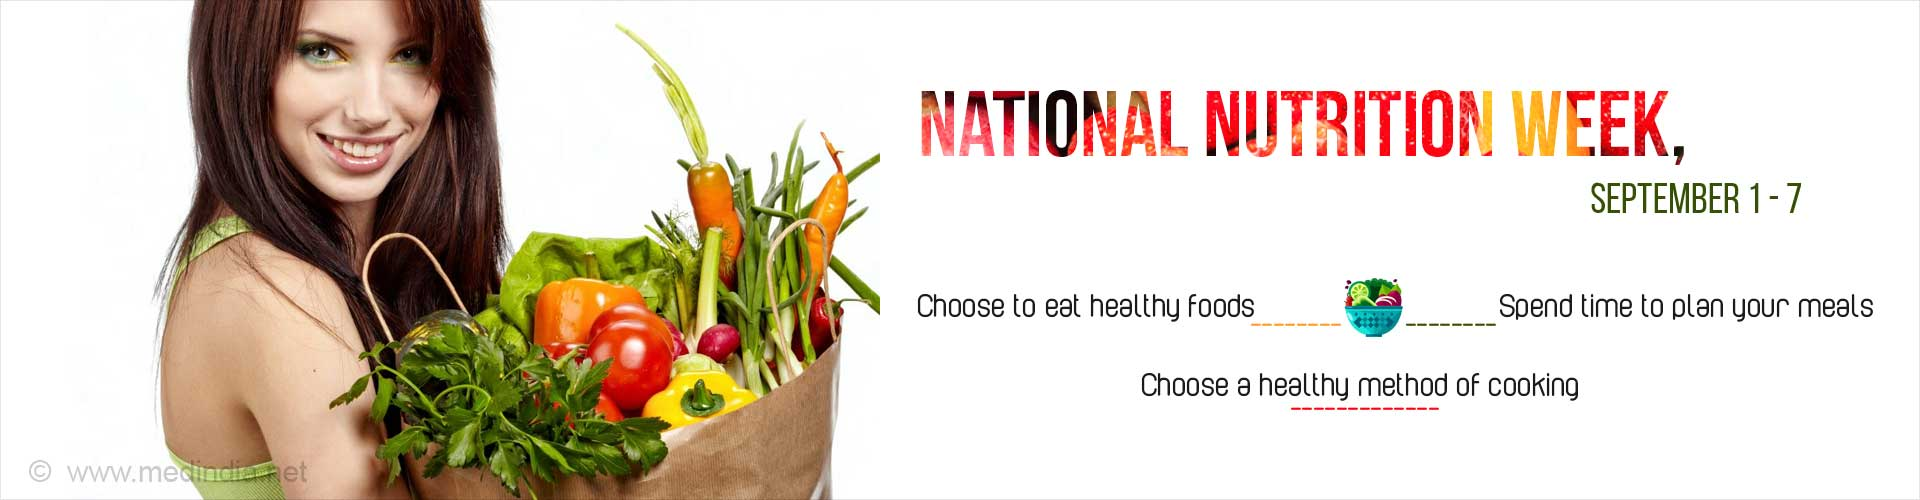 National Nutrition Week (September 1-7)